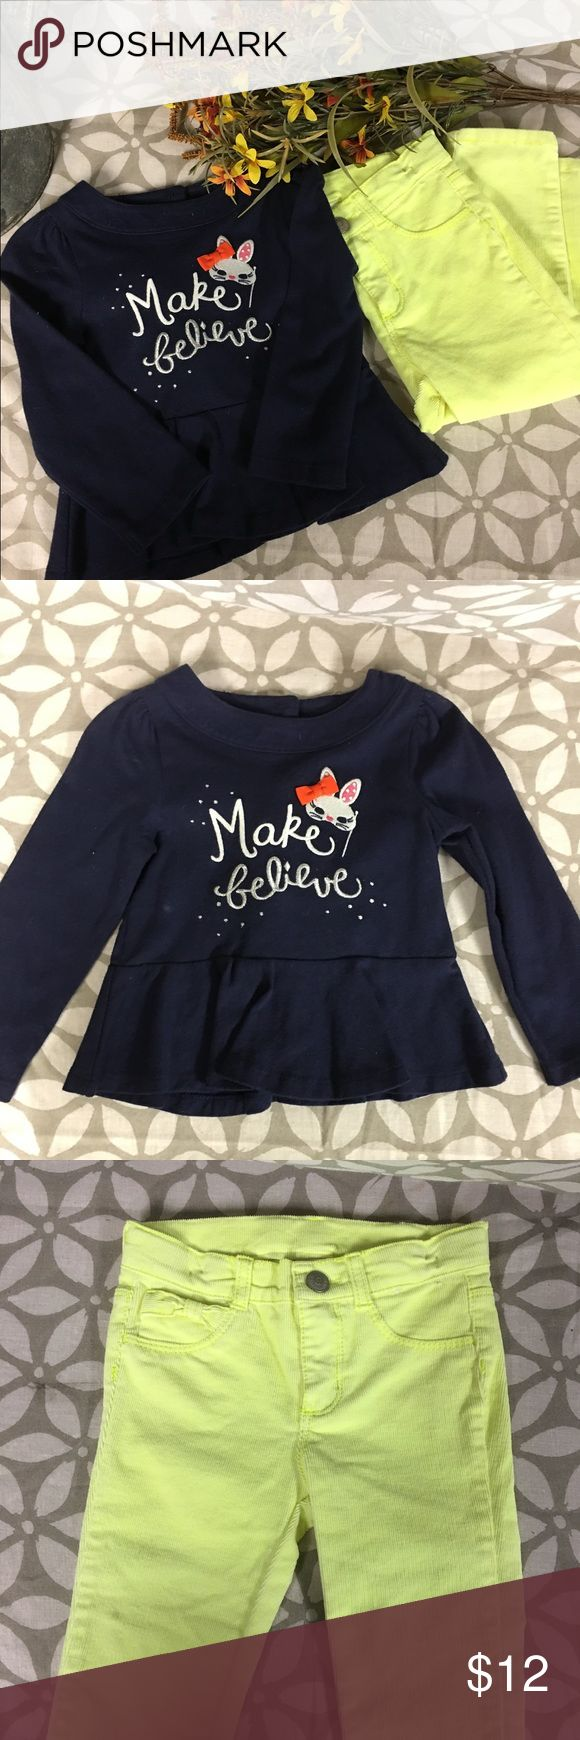 Girl's Gymboree Outfit Gently used corduroy neon yellow pants and navy blue shirt with button on the back for easy slip-on.  Tiny stain on pant leg shown in pic 3.    18-24mos Gymboree Shirts & Tops Tees - Long Sleeve